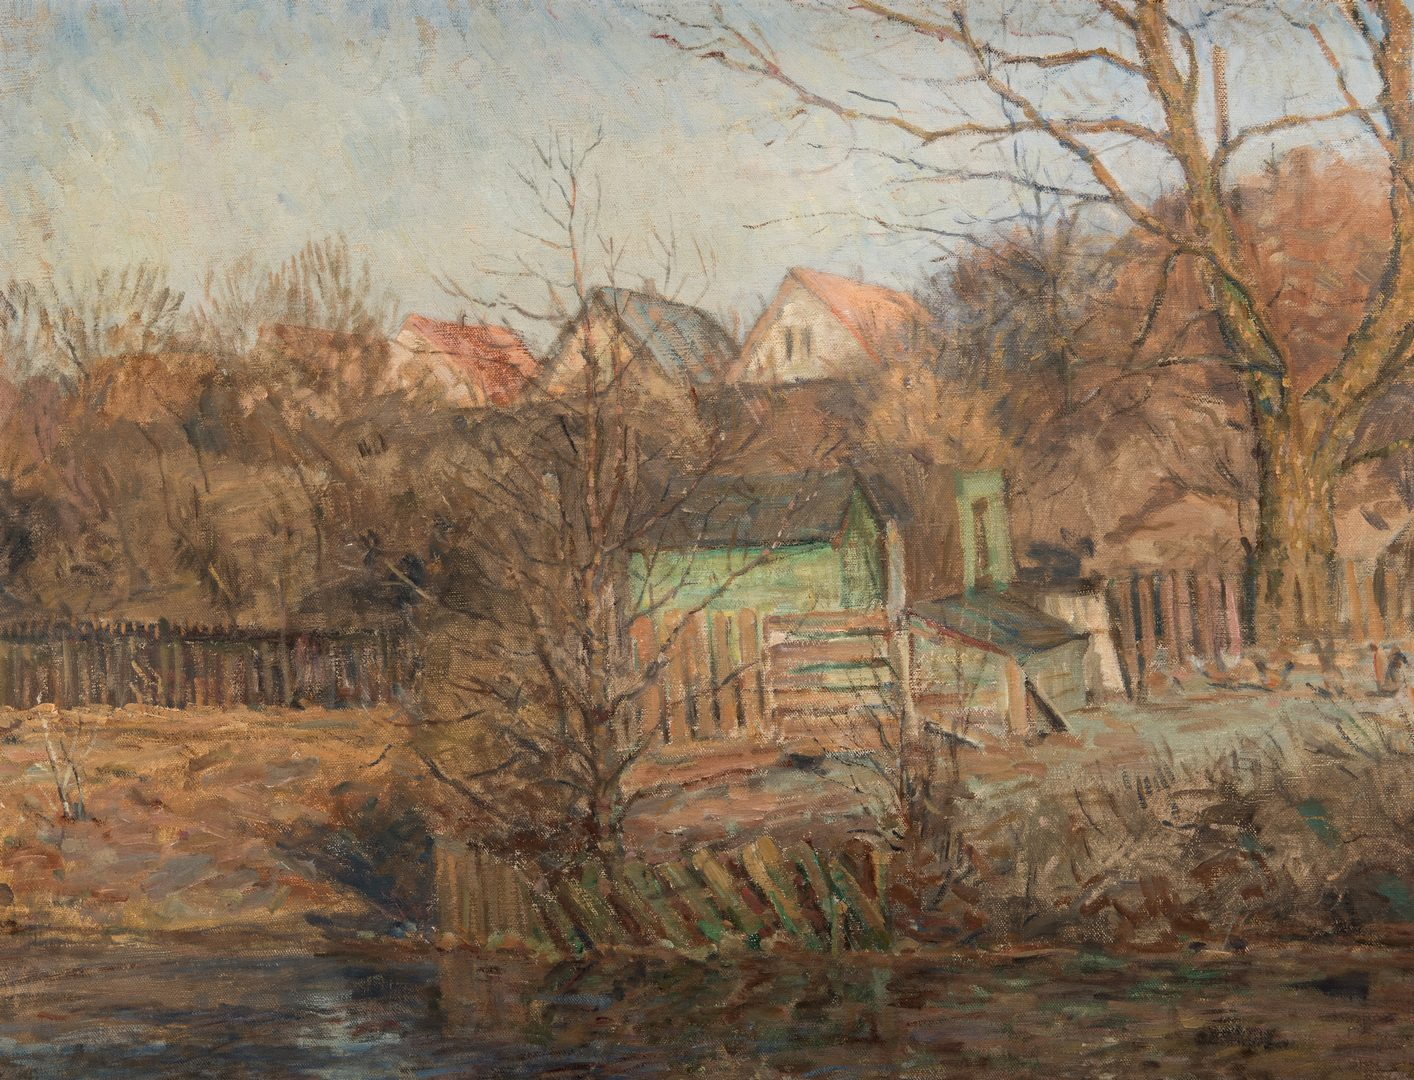 Lot 767: Large Ole Due Oil on Canvas Water Scene